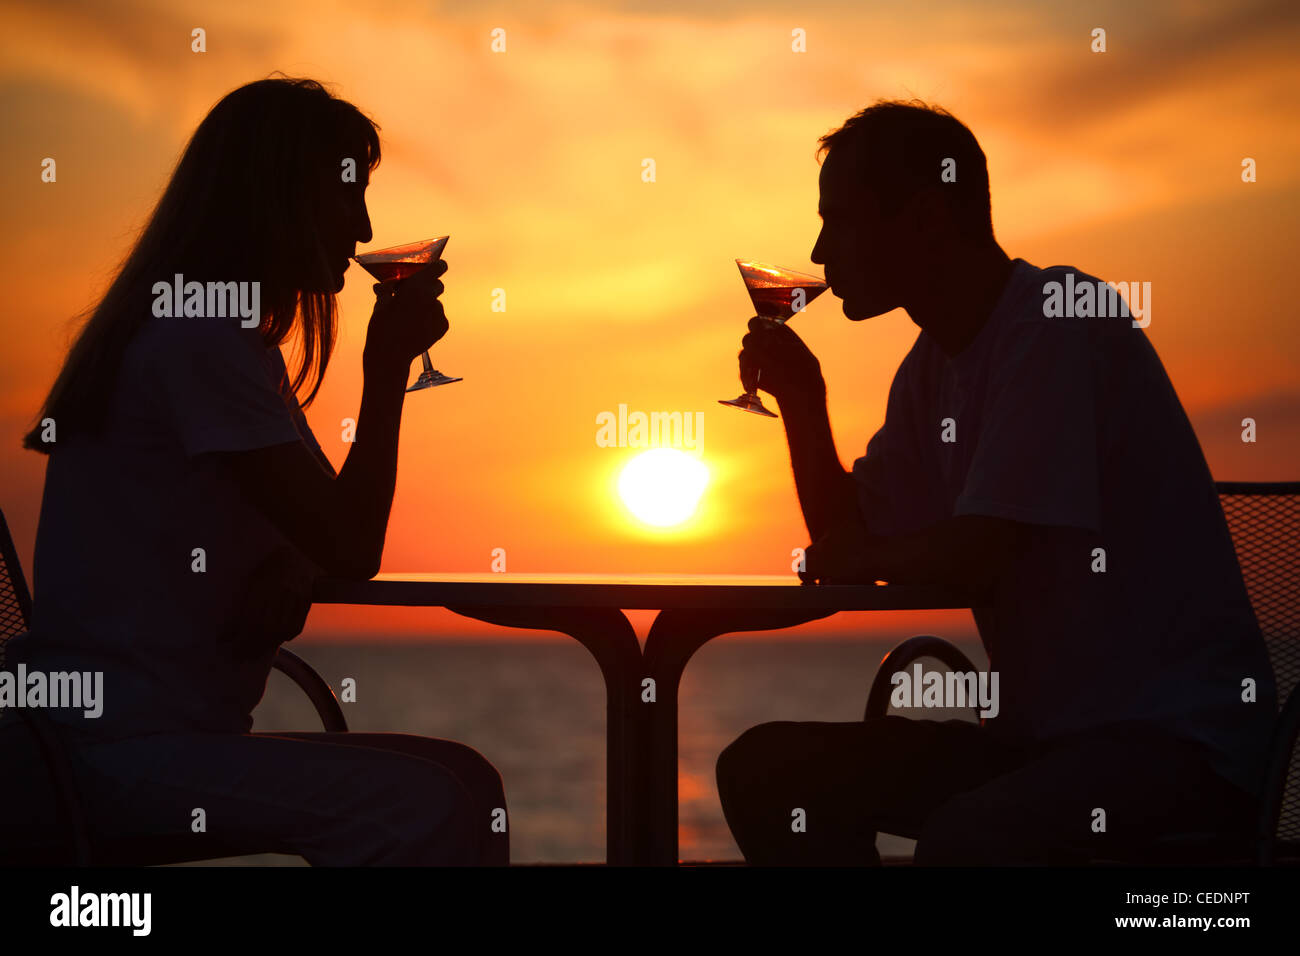 Female and man's silhouettes on sunset  drink from glasses - Stock Image